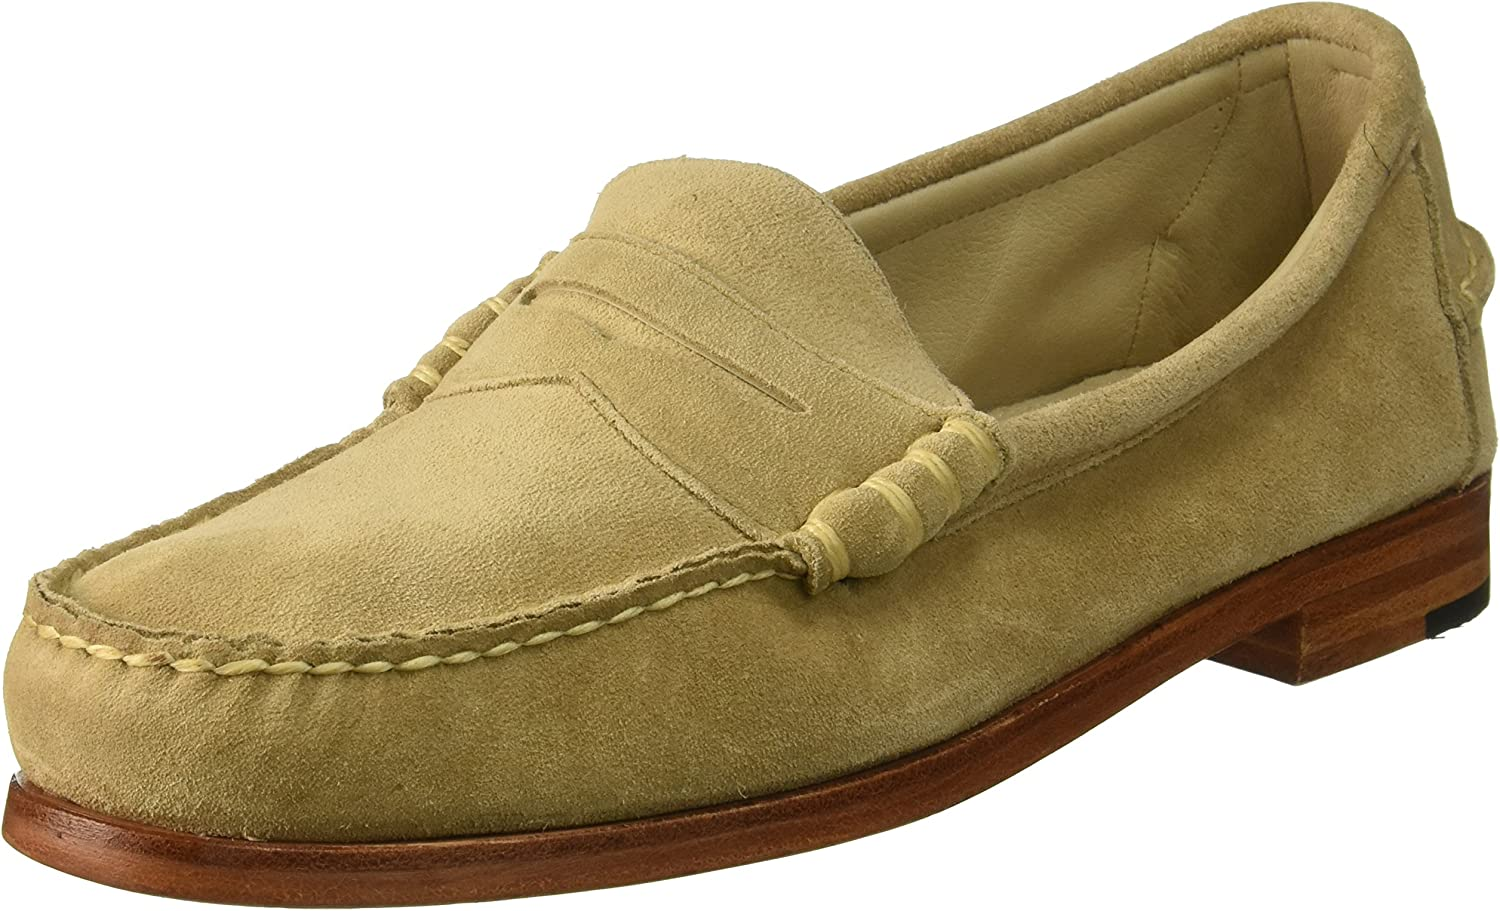 Allen Edmonds Men's Sea Island Penny Loafer